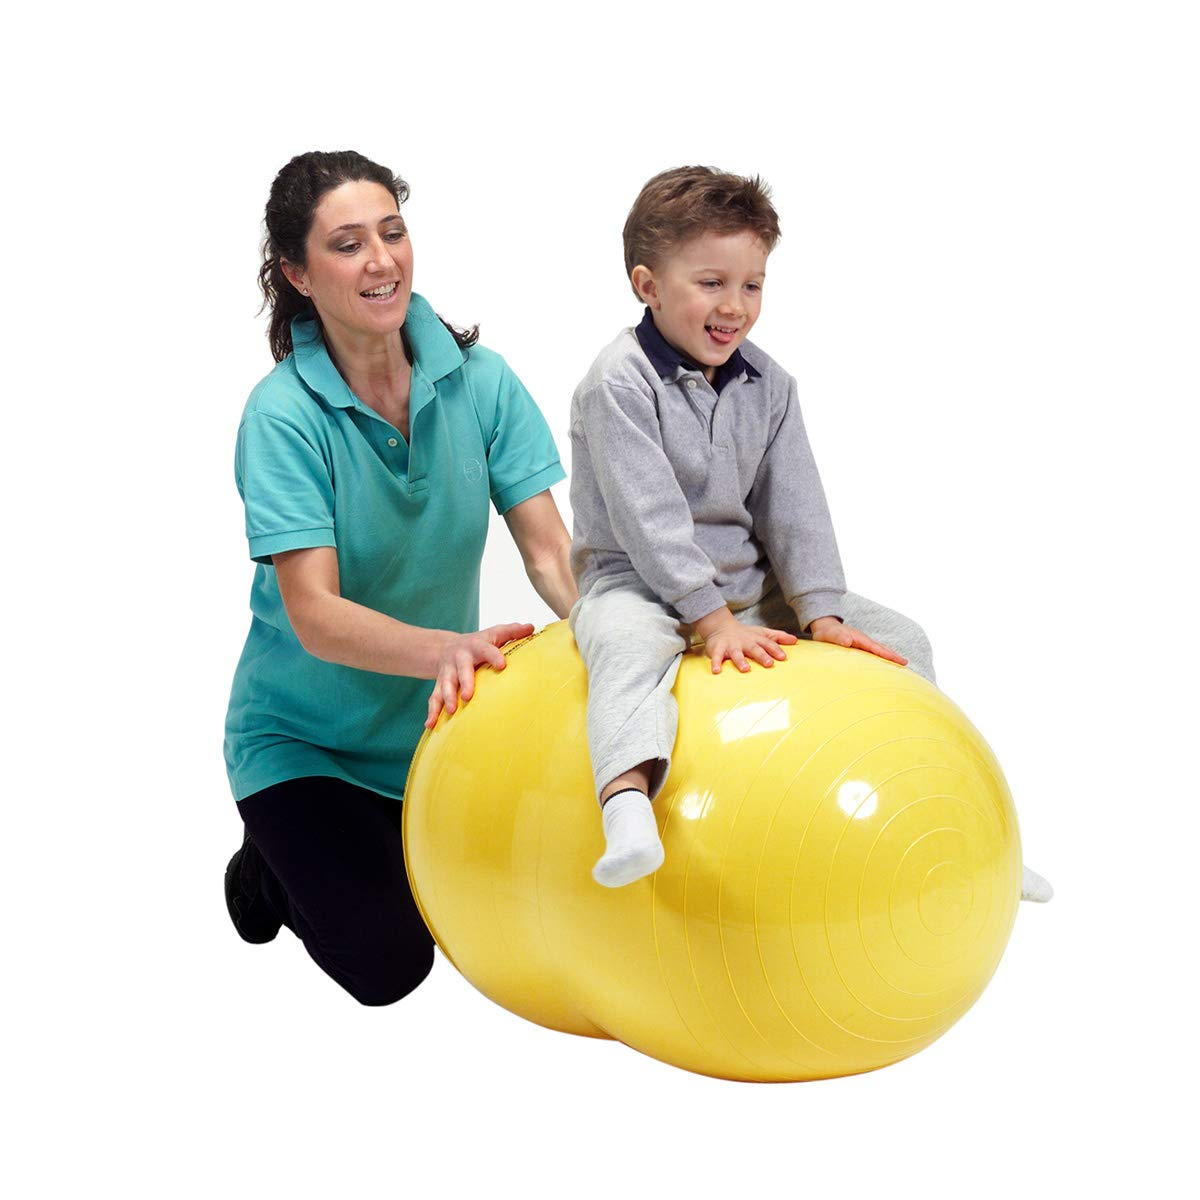 Gymnic Physio Roll Exercise Ball - Red by Gymnic (Image #5)